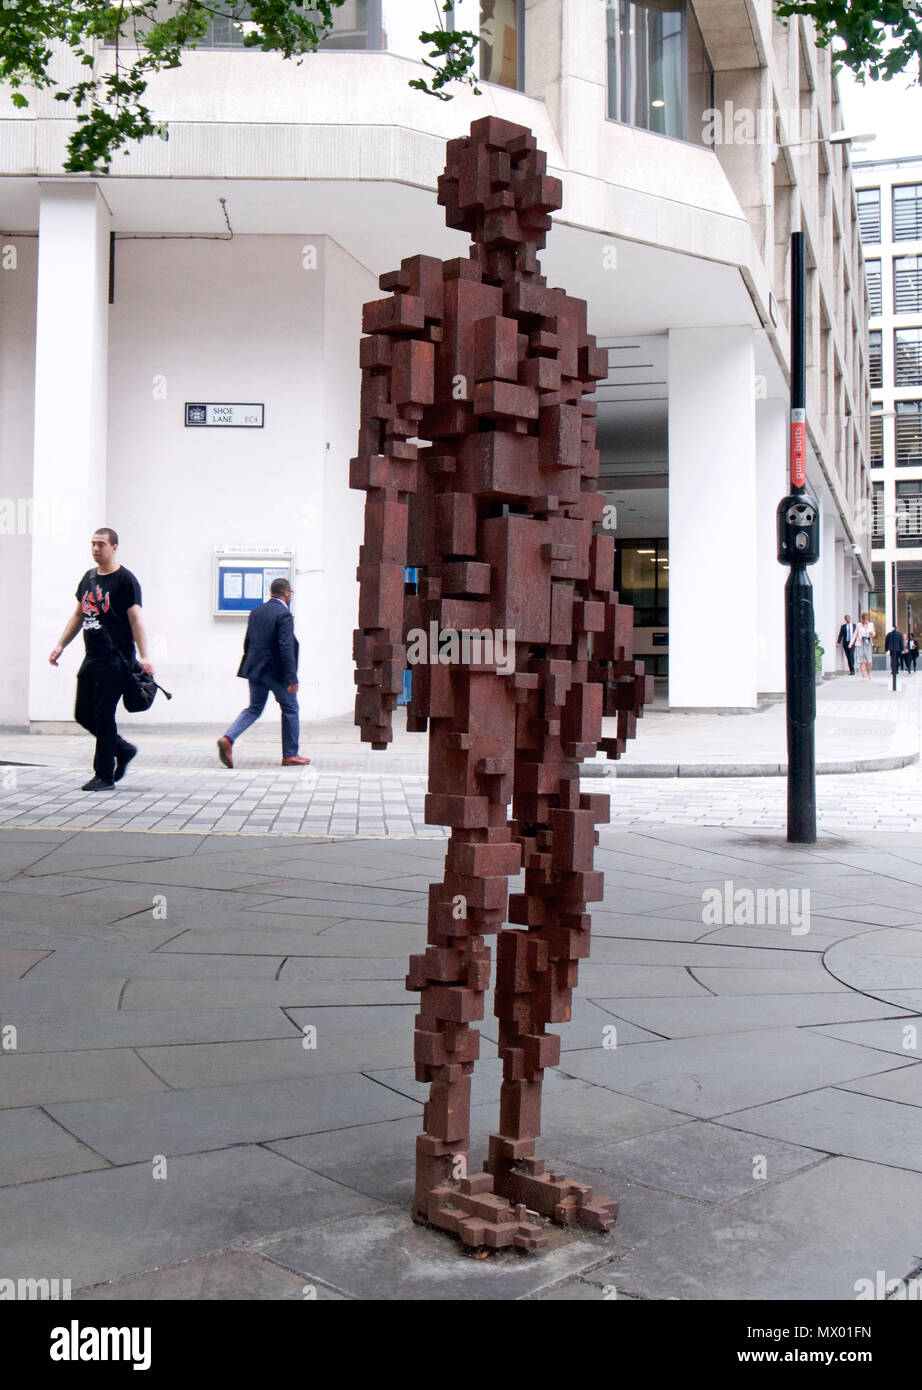 'Resolution' - An Antony Gormley Statue in Shoe Lane, London - Stock Image